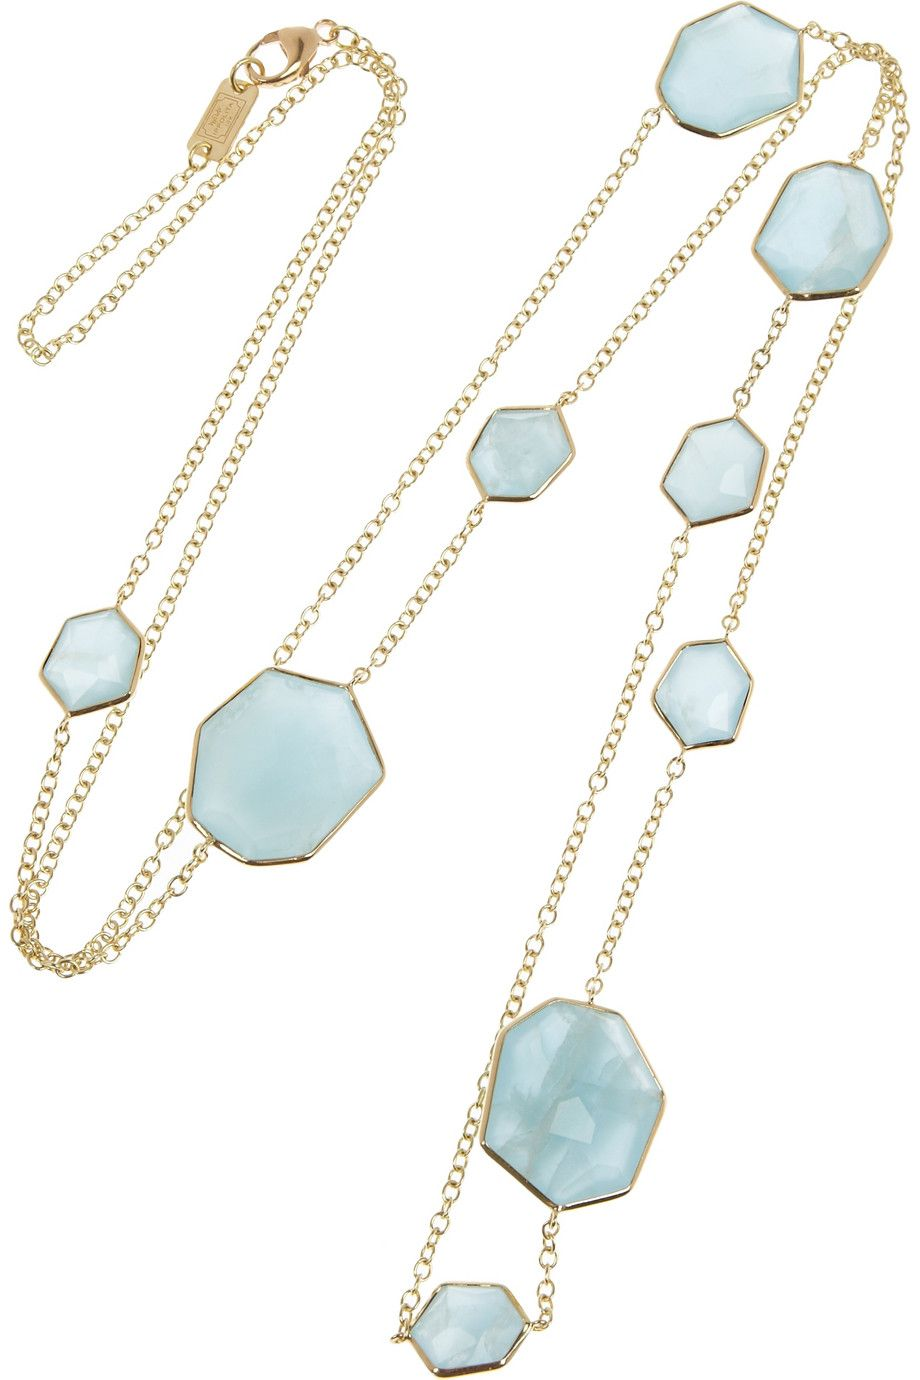 Layer it with similar designs against a simple white top to perfectly showcase the oceanic hues.